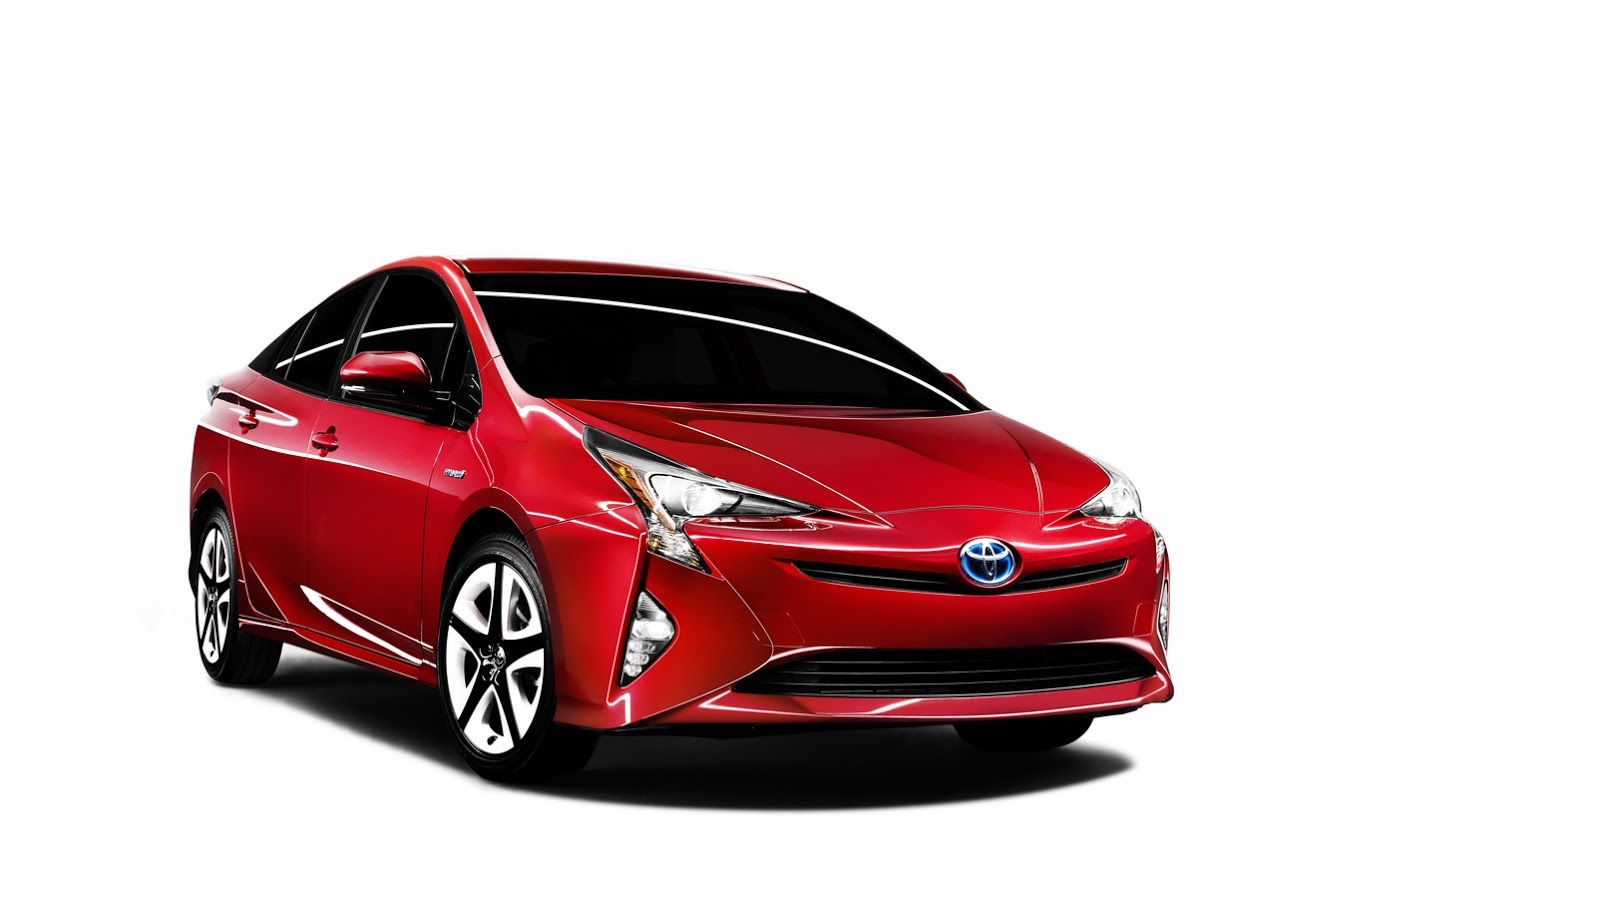 new toyota prius photo gallery car gallery mid size saloons autocar india. Black Bedroom Furniture Sets. Home Design Ideas